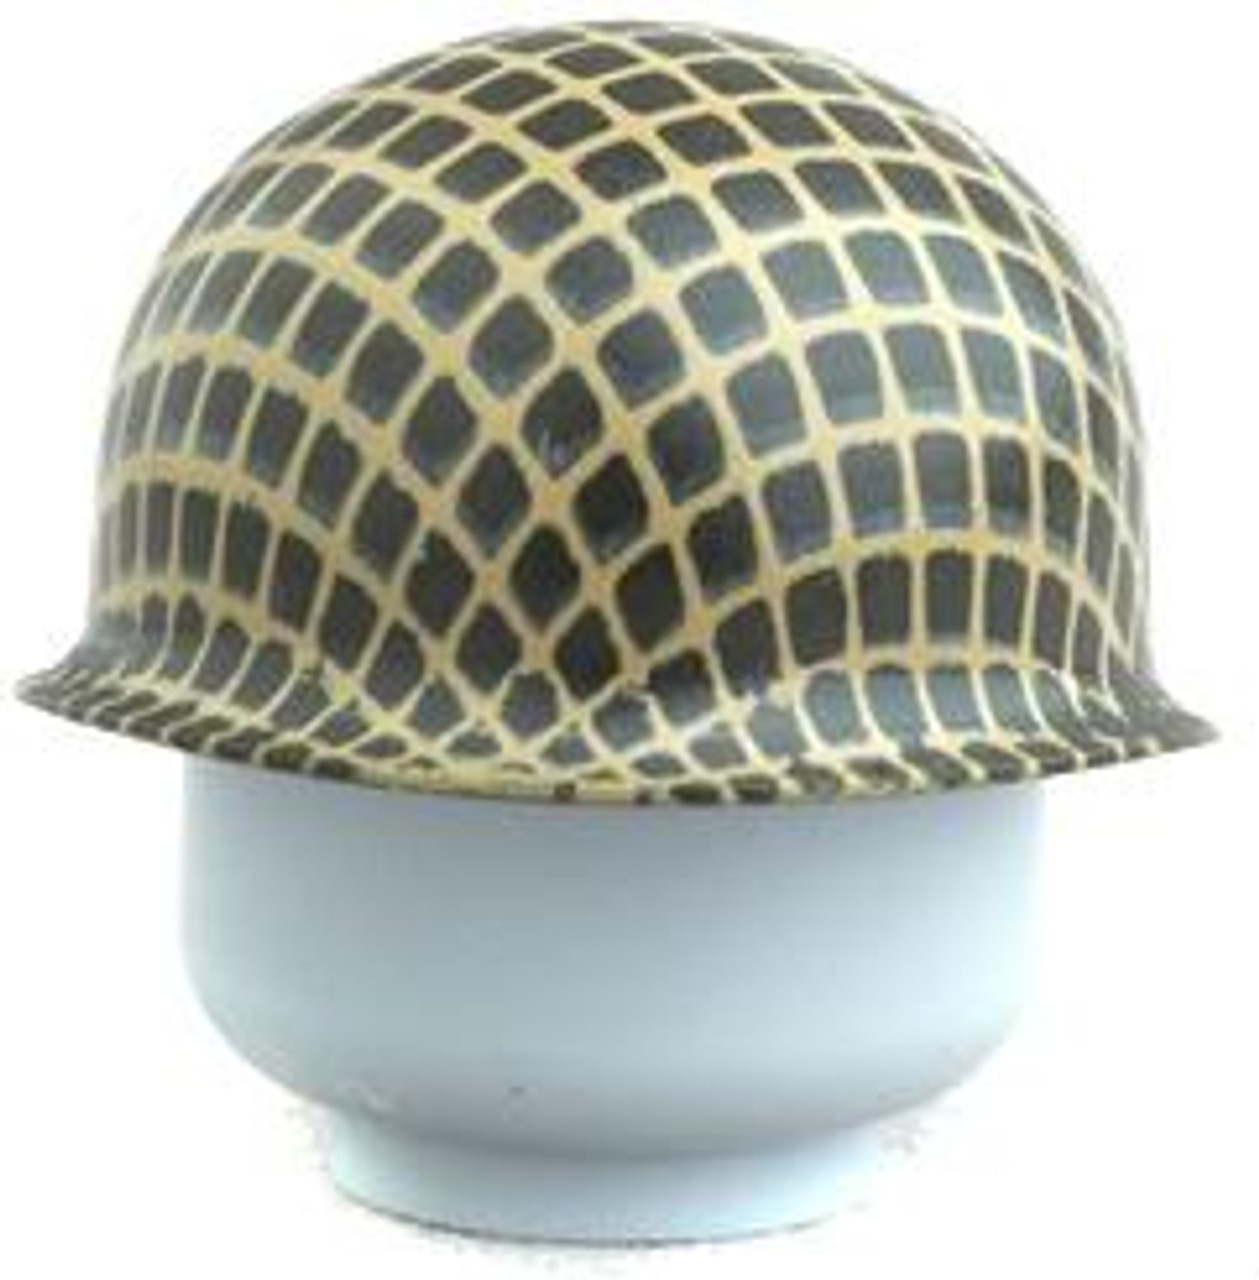 Citizen Brick Custom Painted M1 Steel Pot Helmet with Webbing Loose Accessory